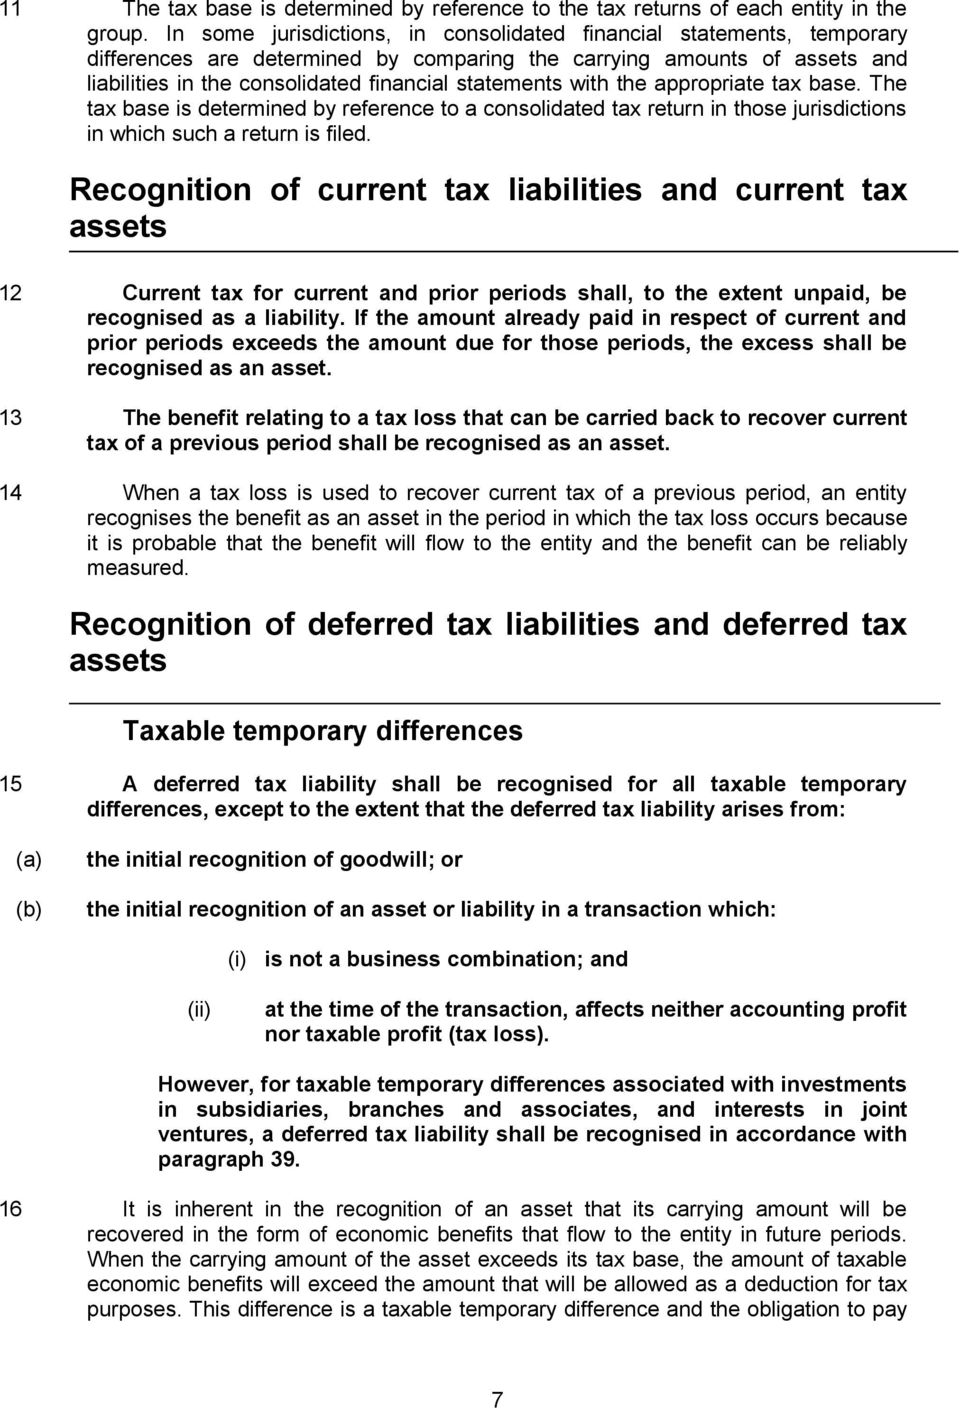 with the appropriate tax base. The tax base is determined by reference to a consolidated tax return in those jurisdictions in which such a return is filed.